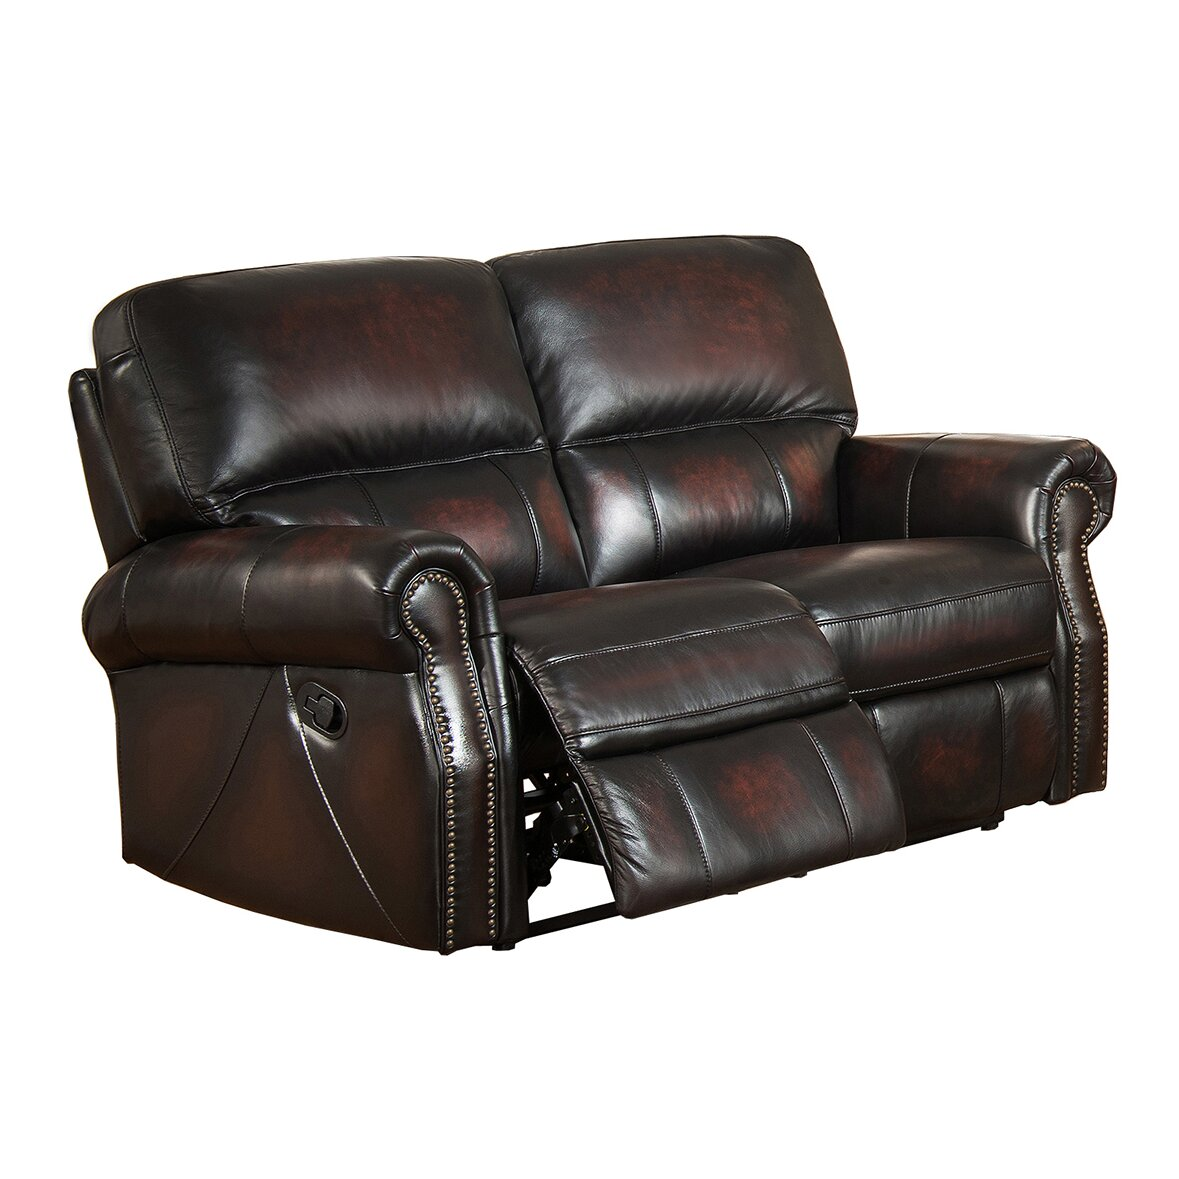 Amax nevada leather recliner sofa and loveseat set wayfair for Leather sofa and loveseat set